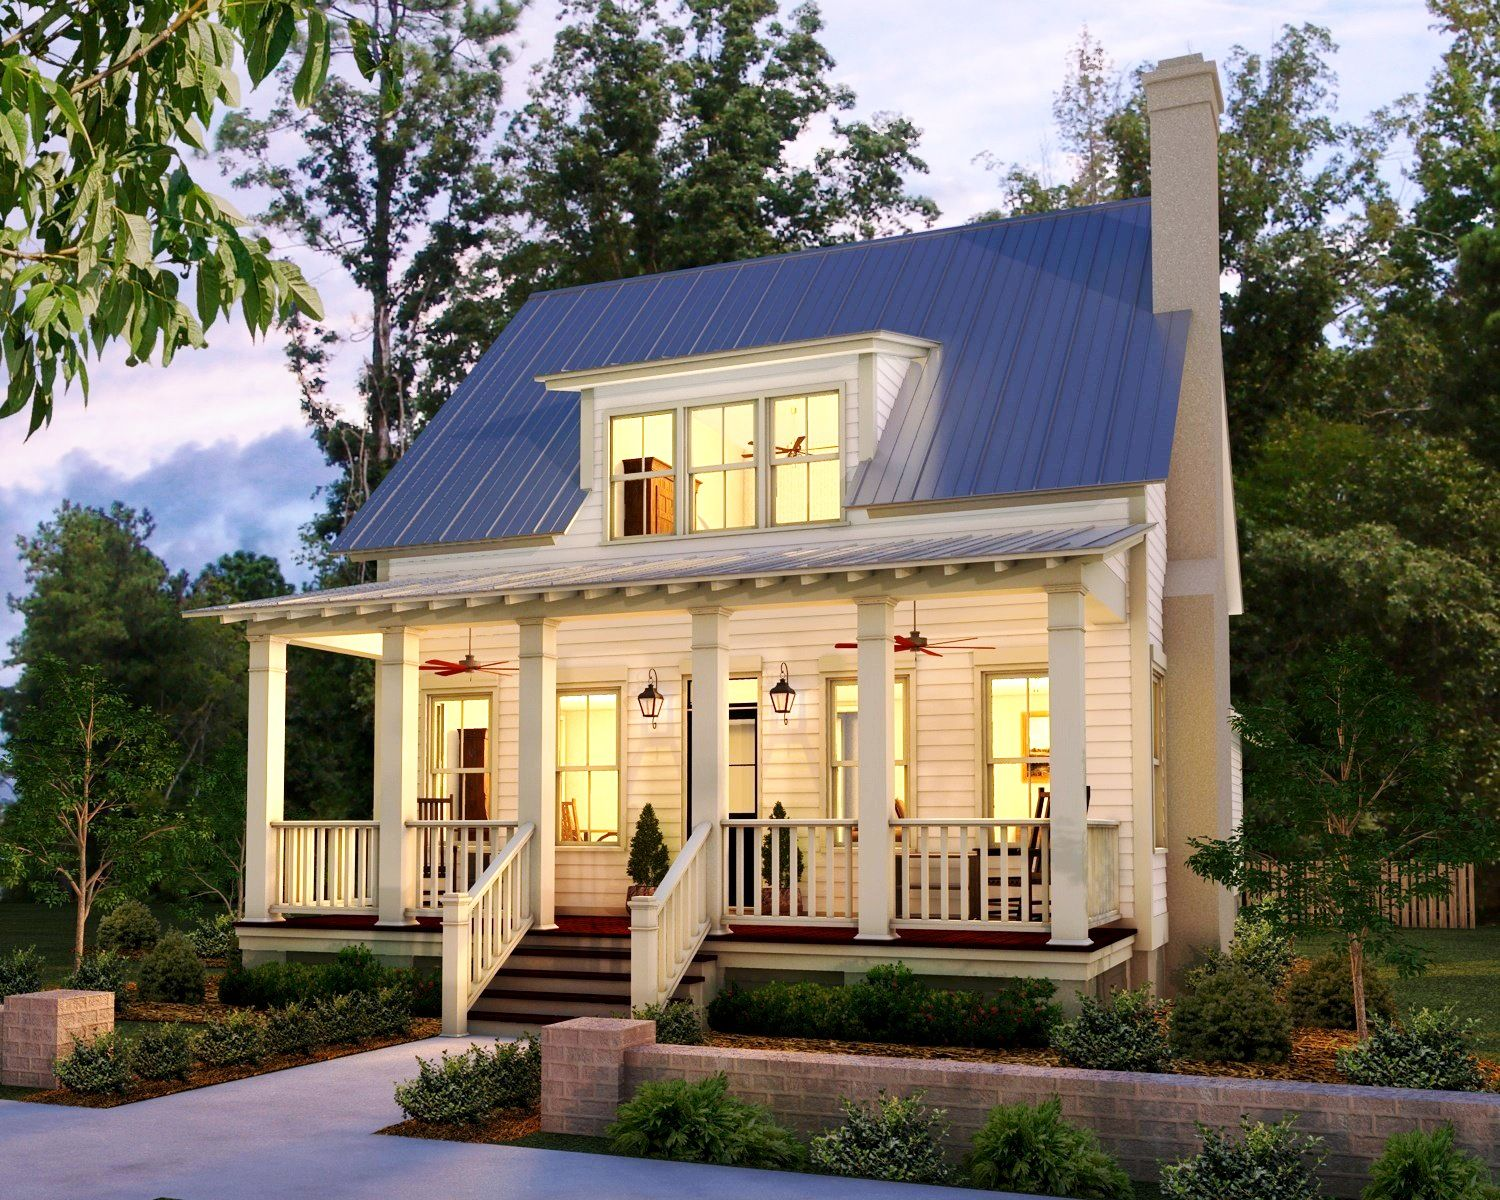 Saluda river club collection of homes columbia sc for Tiny house cottage style